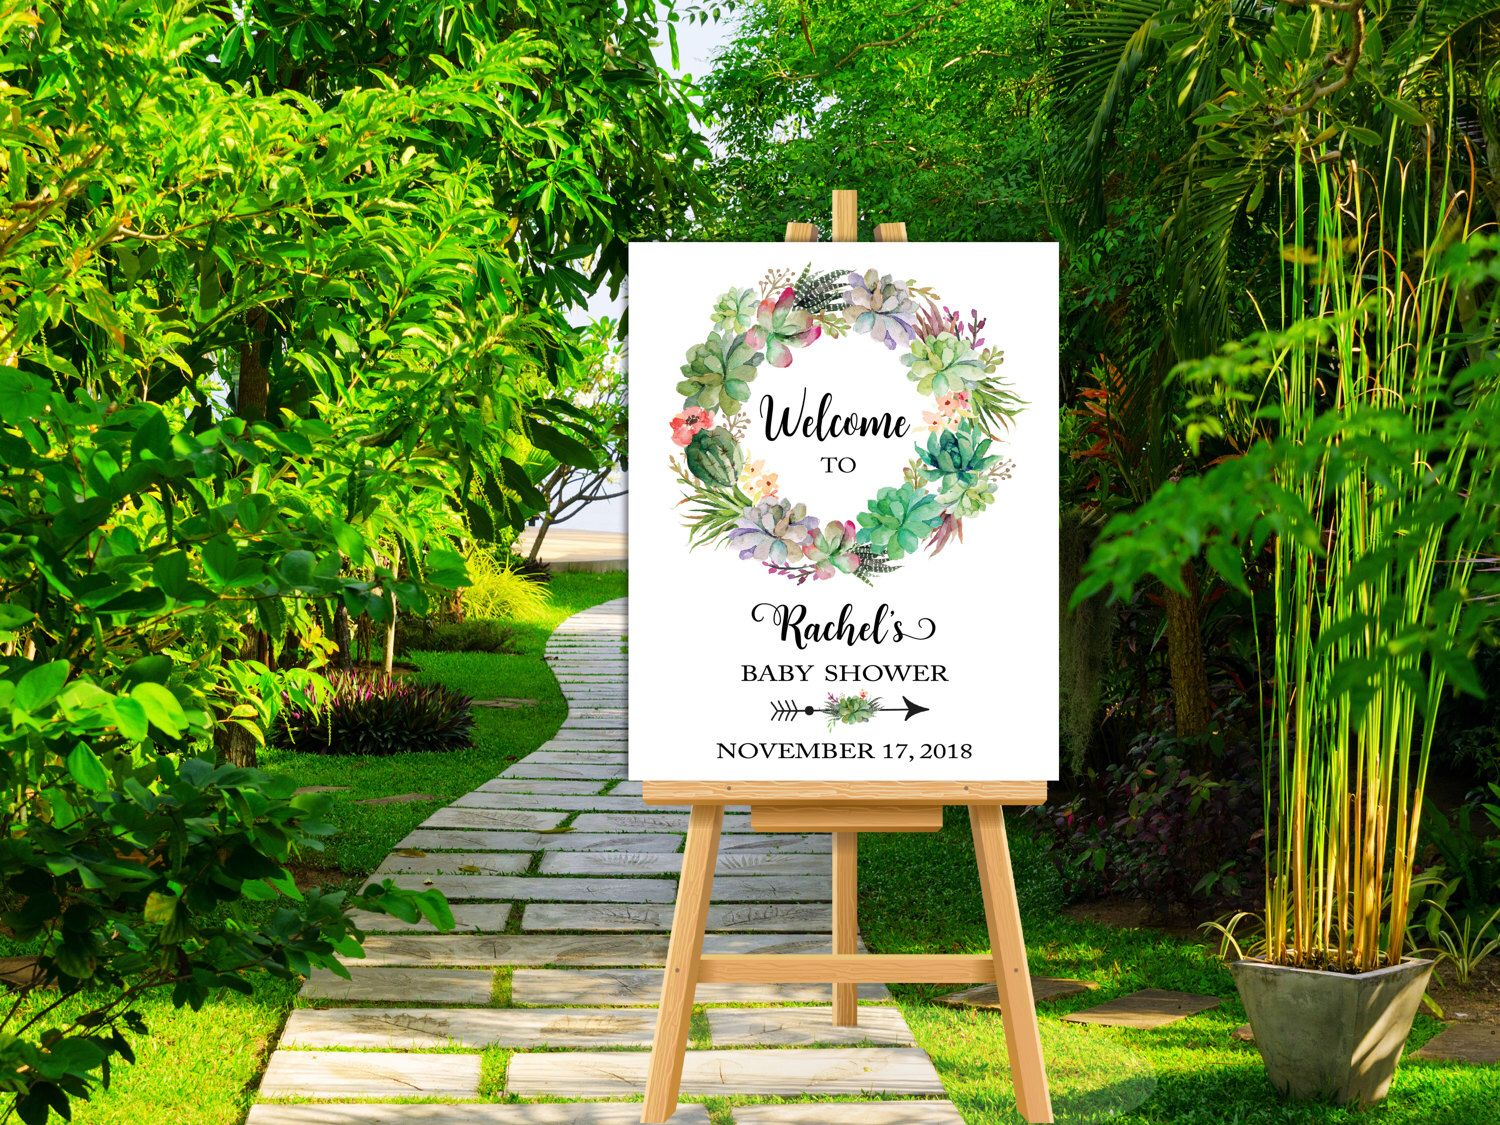 Succulents Baby Shower Welcome Sign, Personalized Large Baby Shower ...